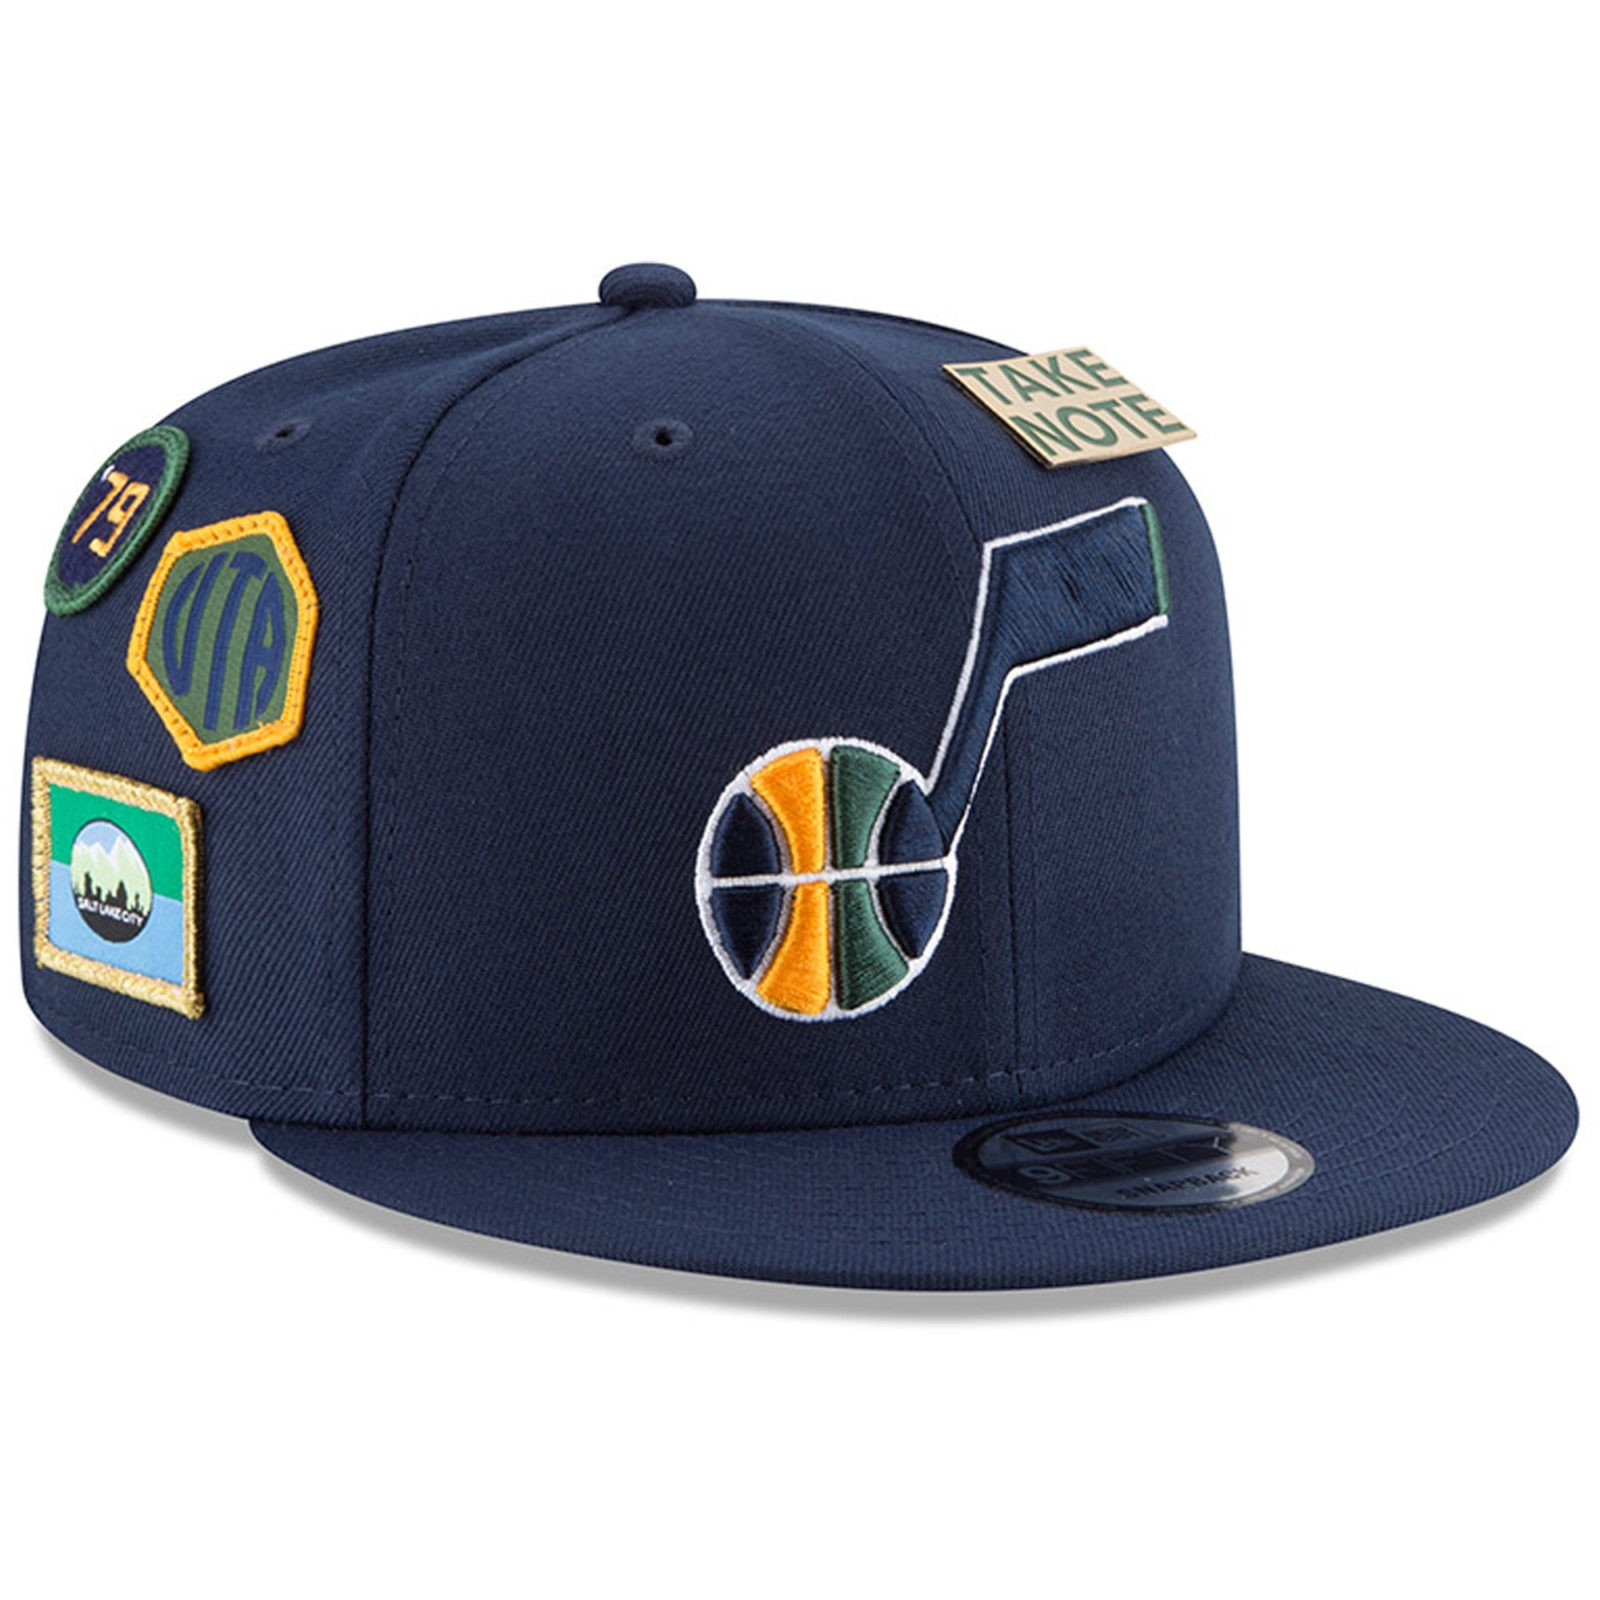 481dc6a417c Utah Jazz New Era 2018 Draft 9FIFTY Snapback Adjustable Hat – Navy